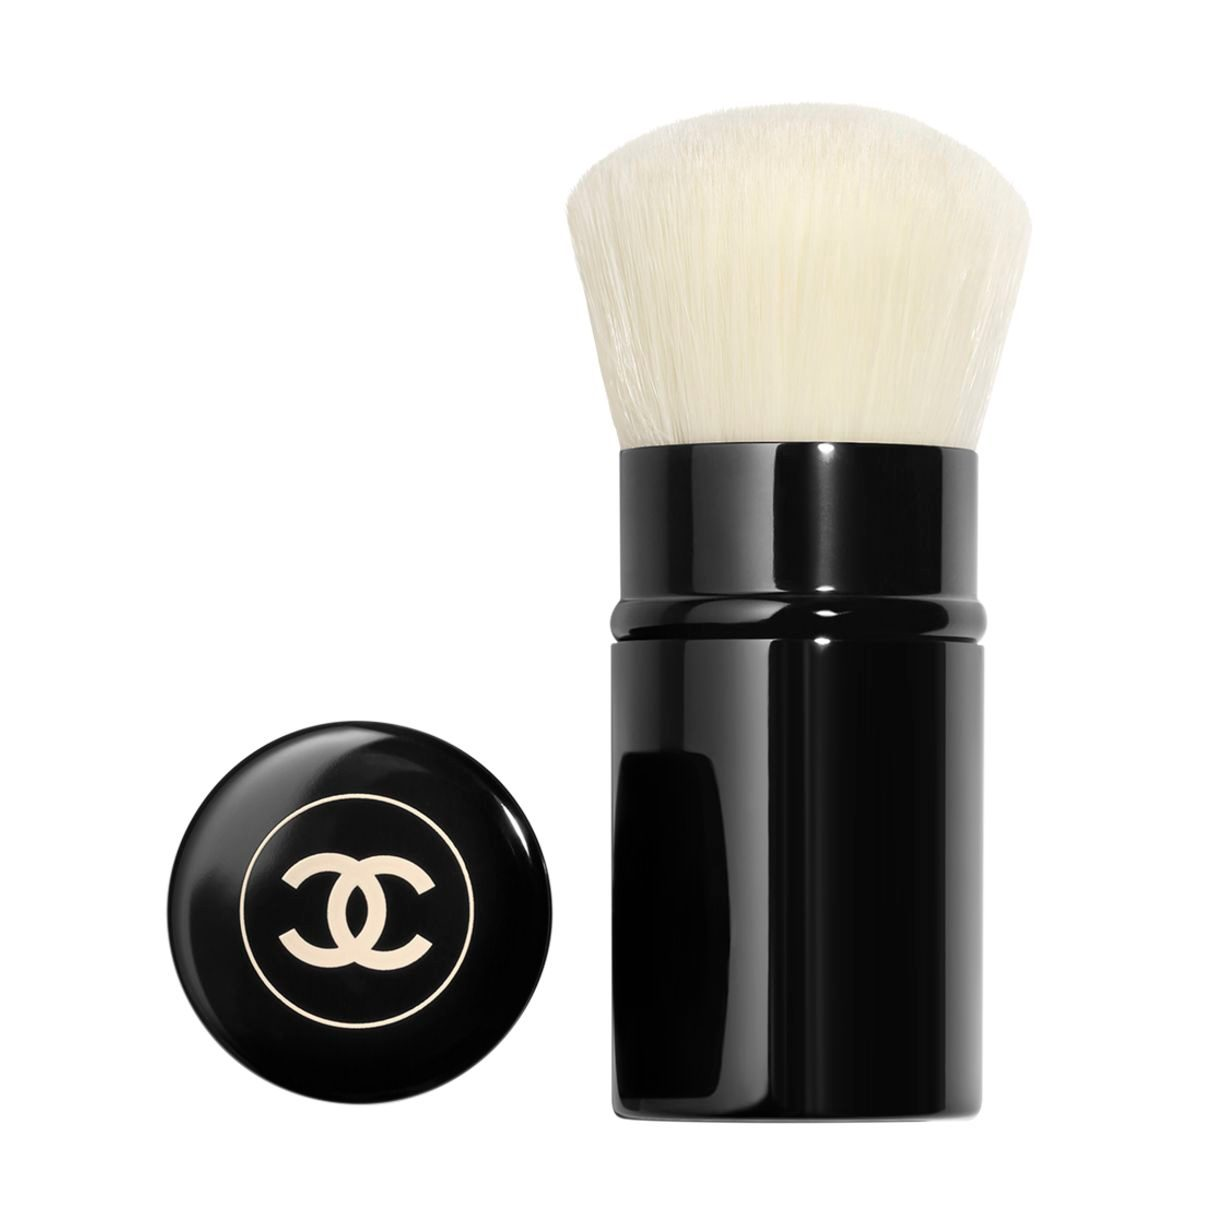 PINCEAU KABUKI RÉTRACTABLE RETRACTABLE KABUKI BRUSH